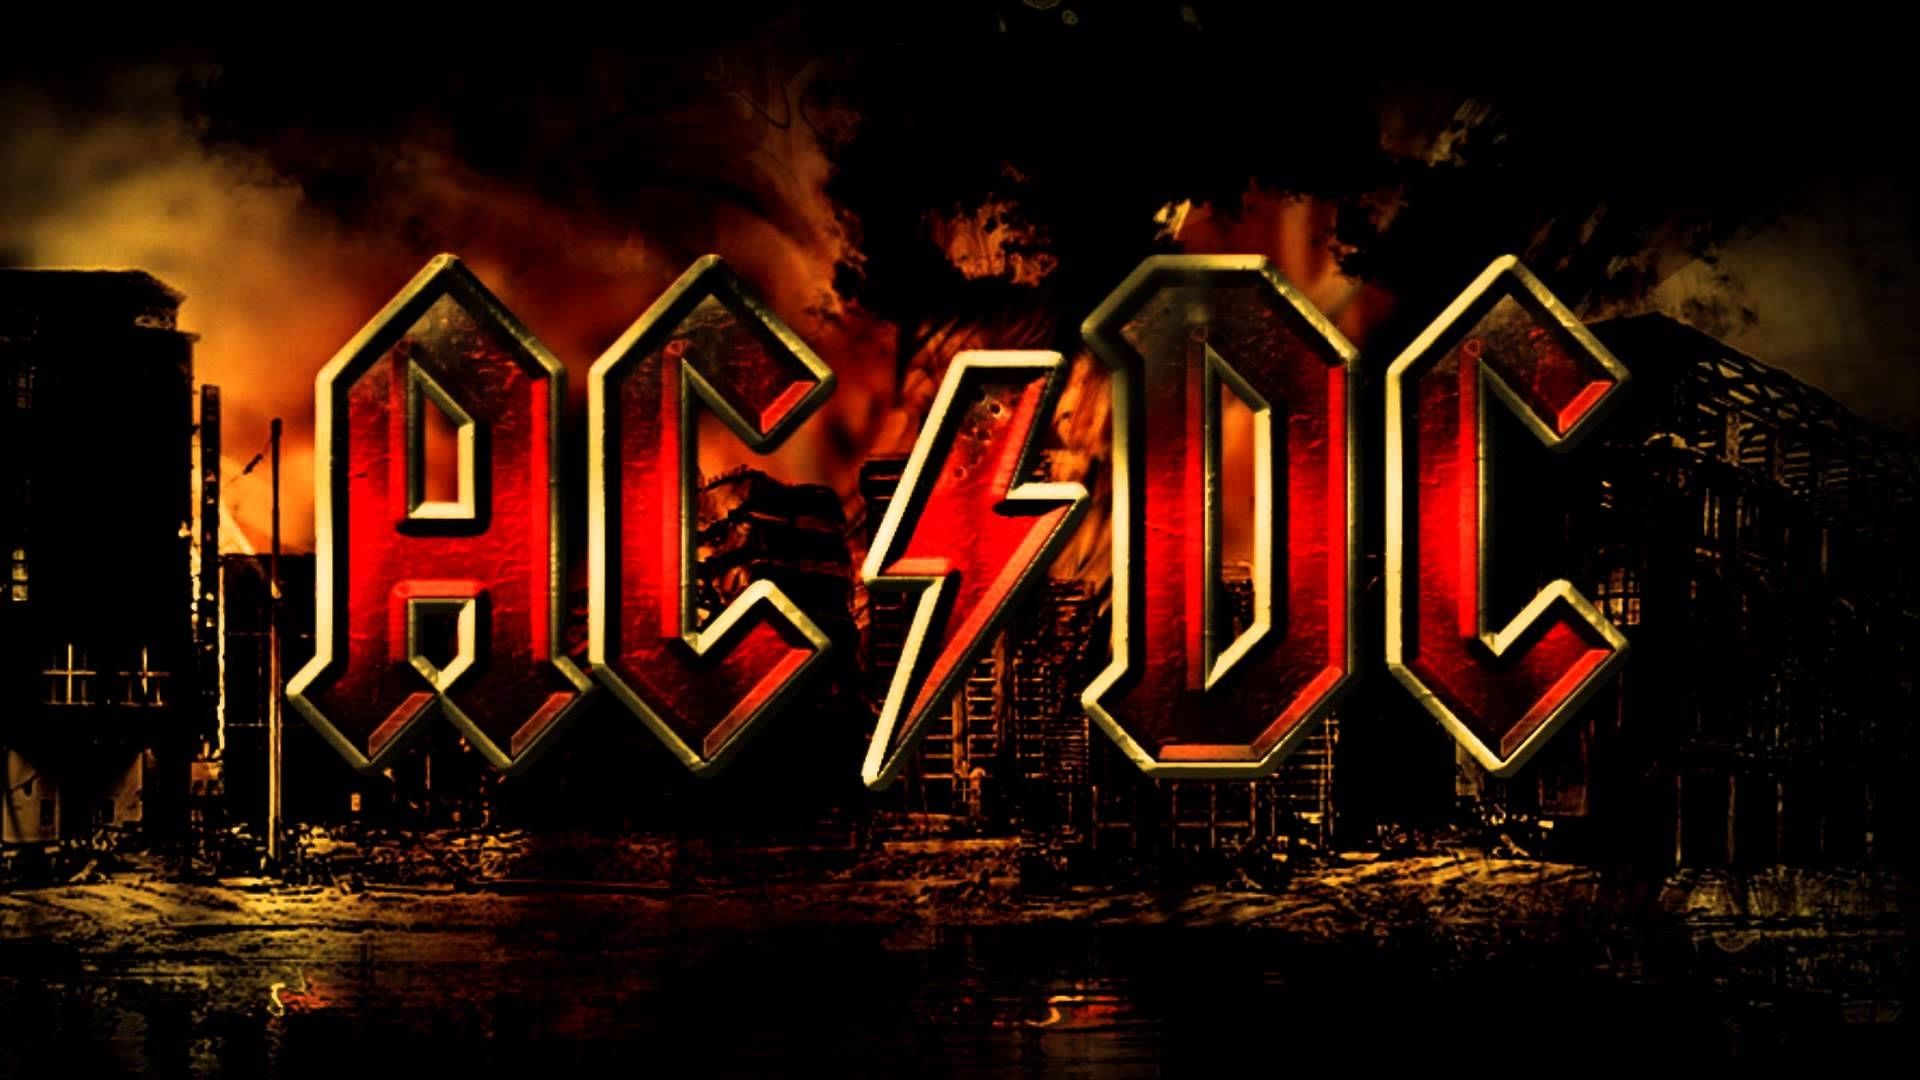 Res: 1920x1080, Music Wallpaper: Ac Dc Thunderstruck Wallpapers Phone with